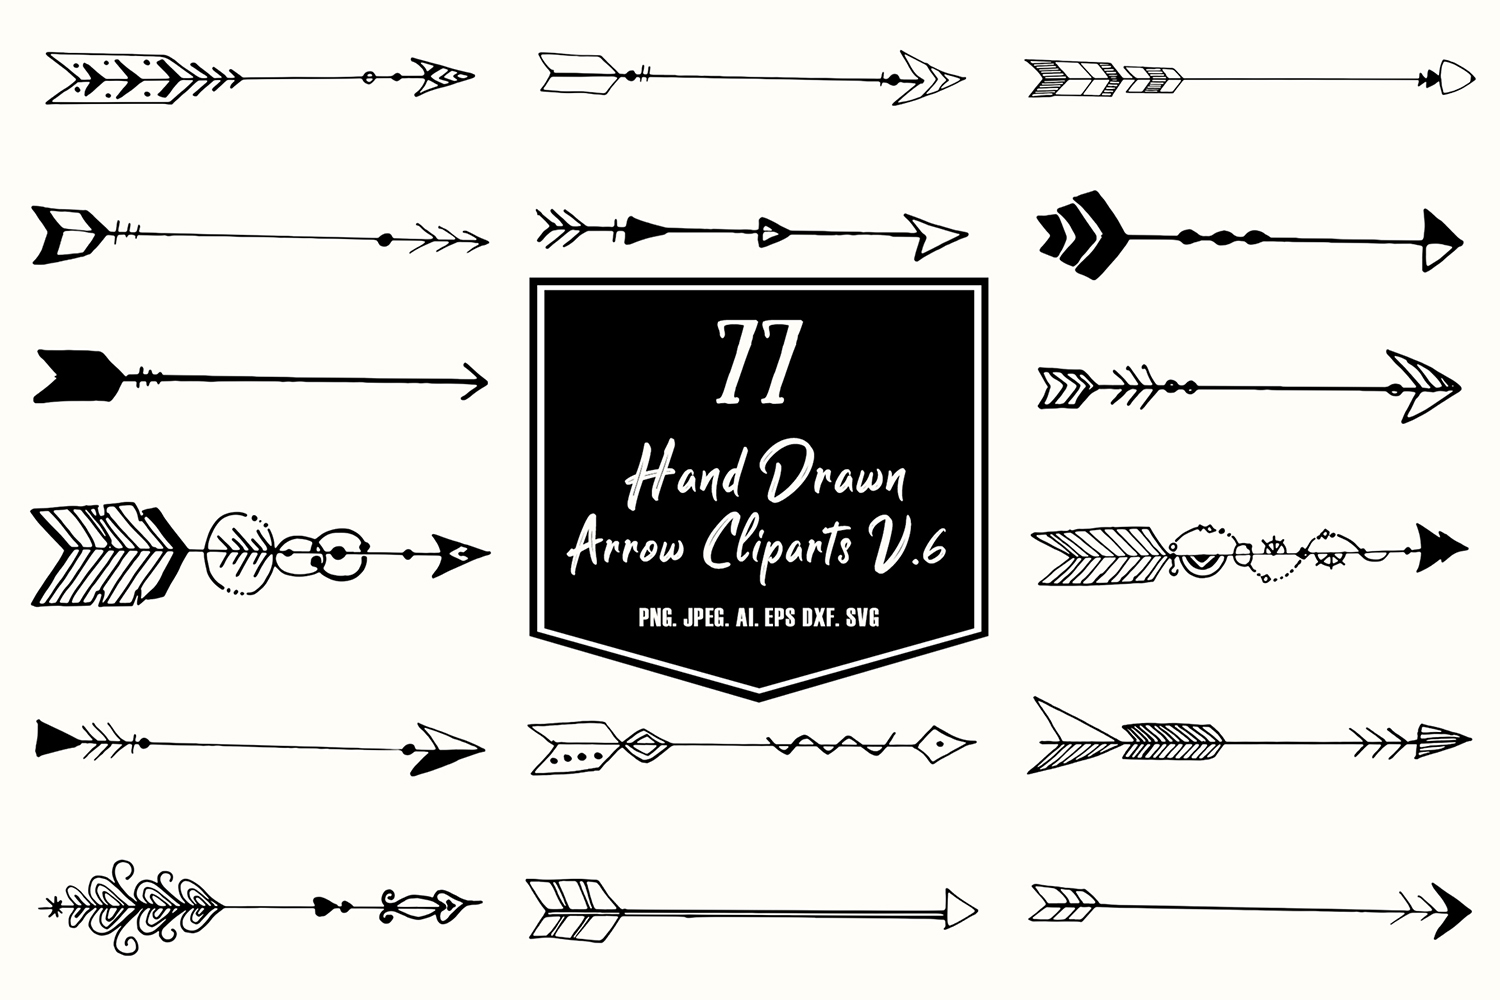 Hand Drawn Arrows Cliparts Ver 6 Graphic By Creative Tacos